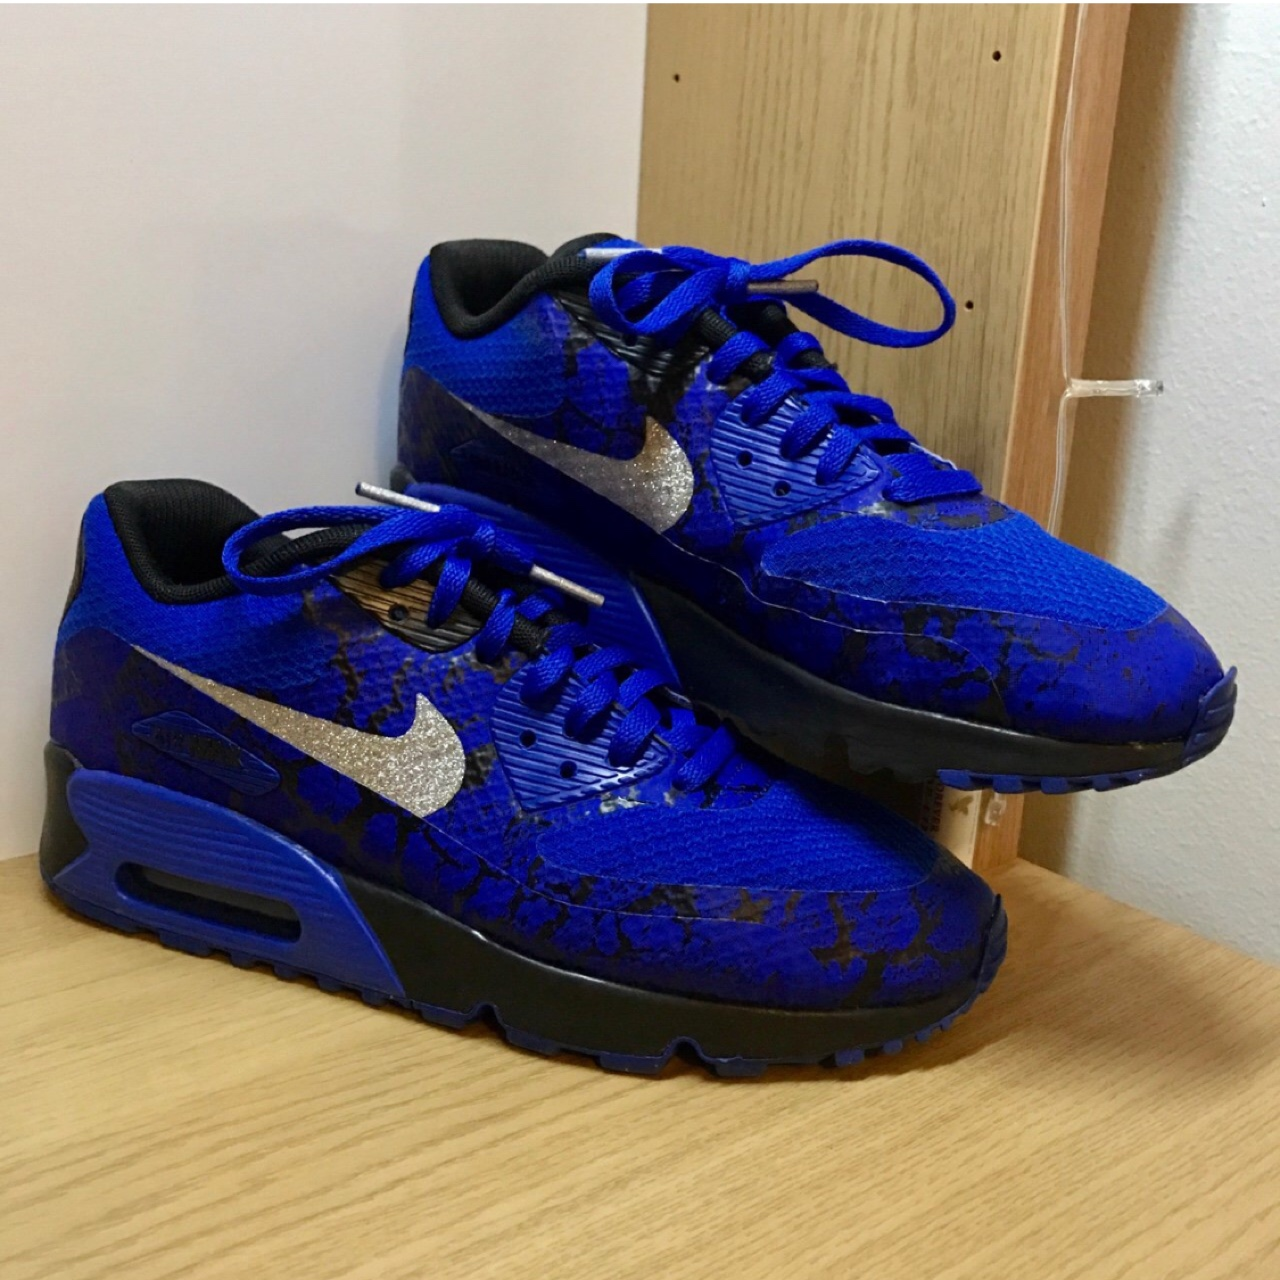 pretty nice 100% authentic sale retailer Blue Sparkly Nike Air Max 90. Unisex. From... - Depop